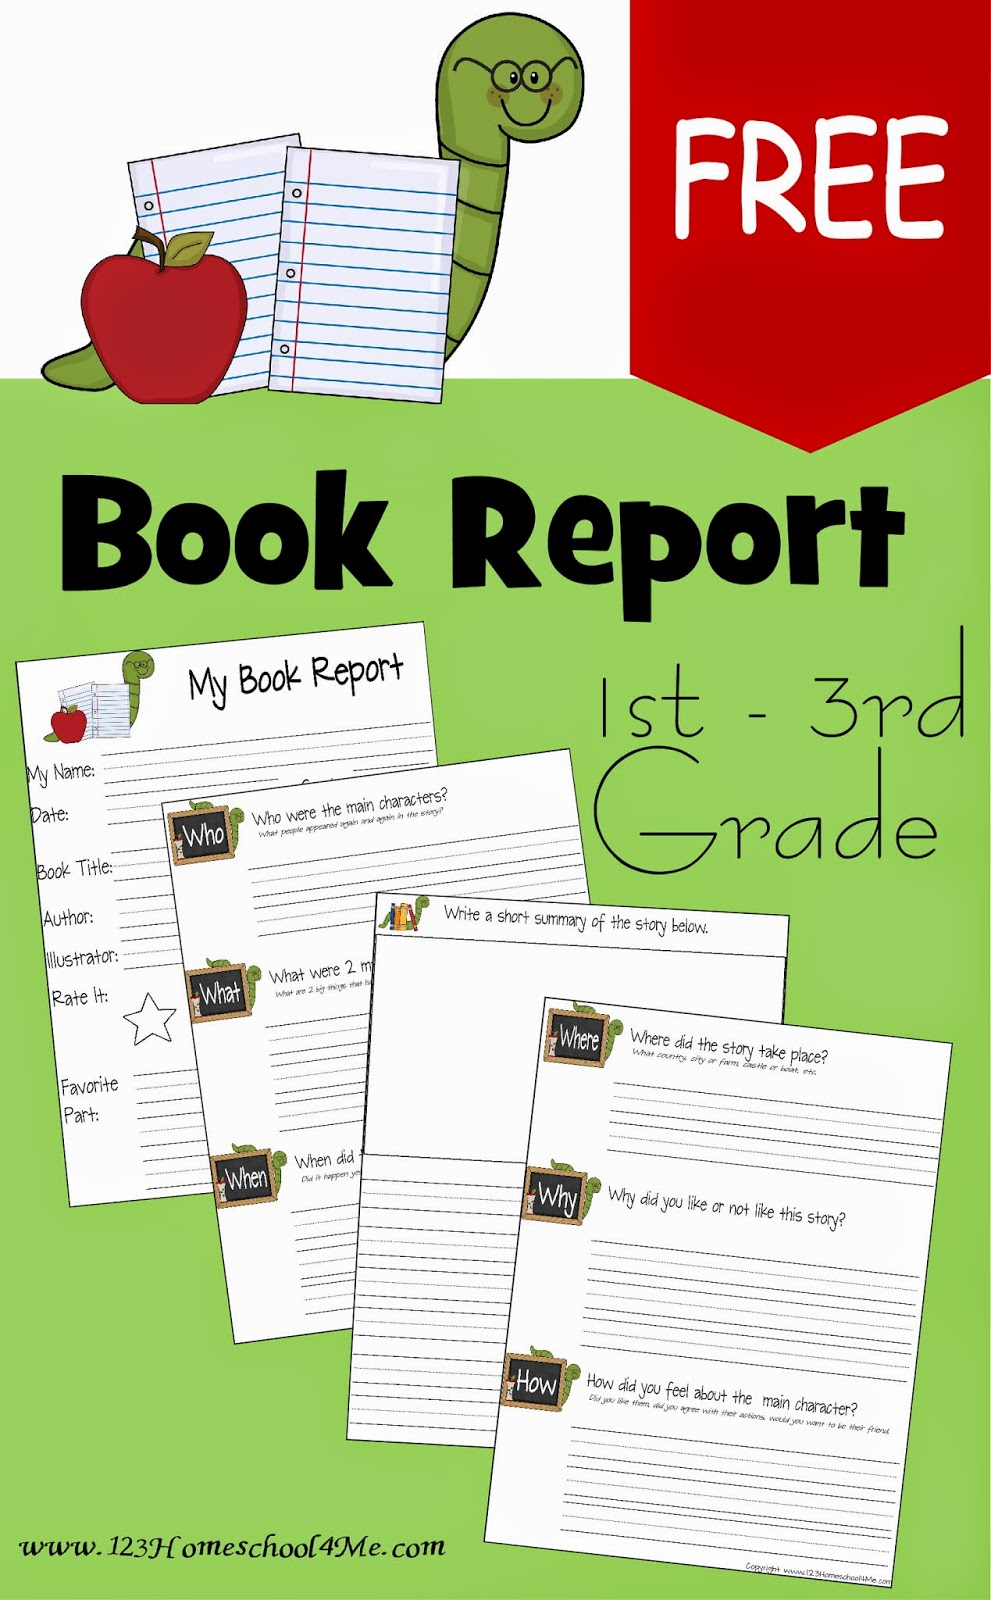 book report in english for grade 5 These book report forms are suitable for both beginning readers and older children the first is simply a form they can fill out that becomes their book report the second set is an outline primer plus a page for them to handwrite their report (if you don't already make them use a word processor.